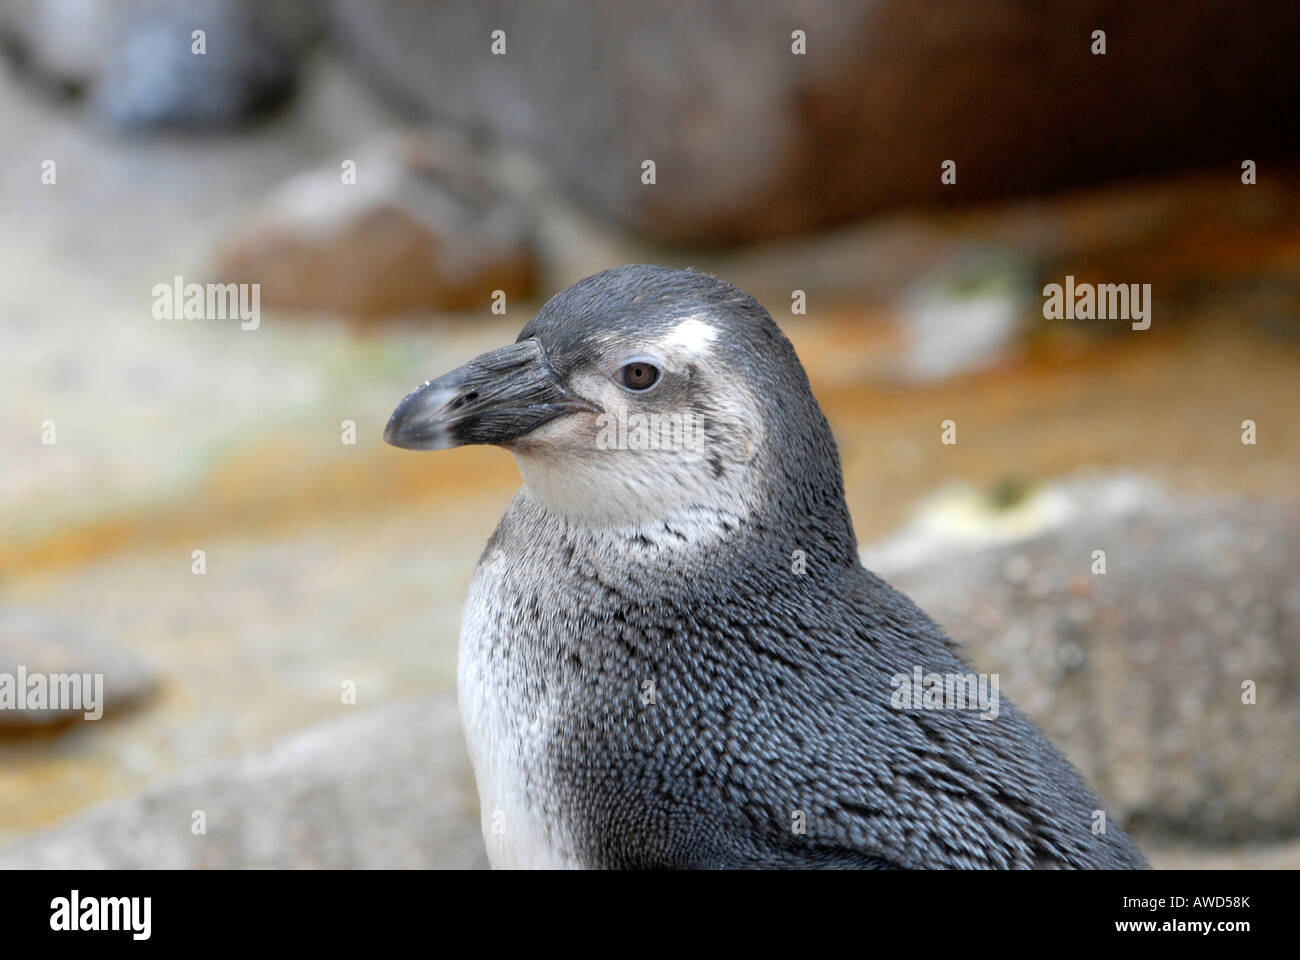 Magellanic Penguin (Spheniscus magellanicus) at a zoo in Germany, Europe Stock Photo